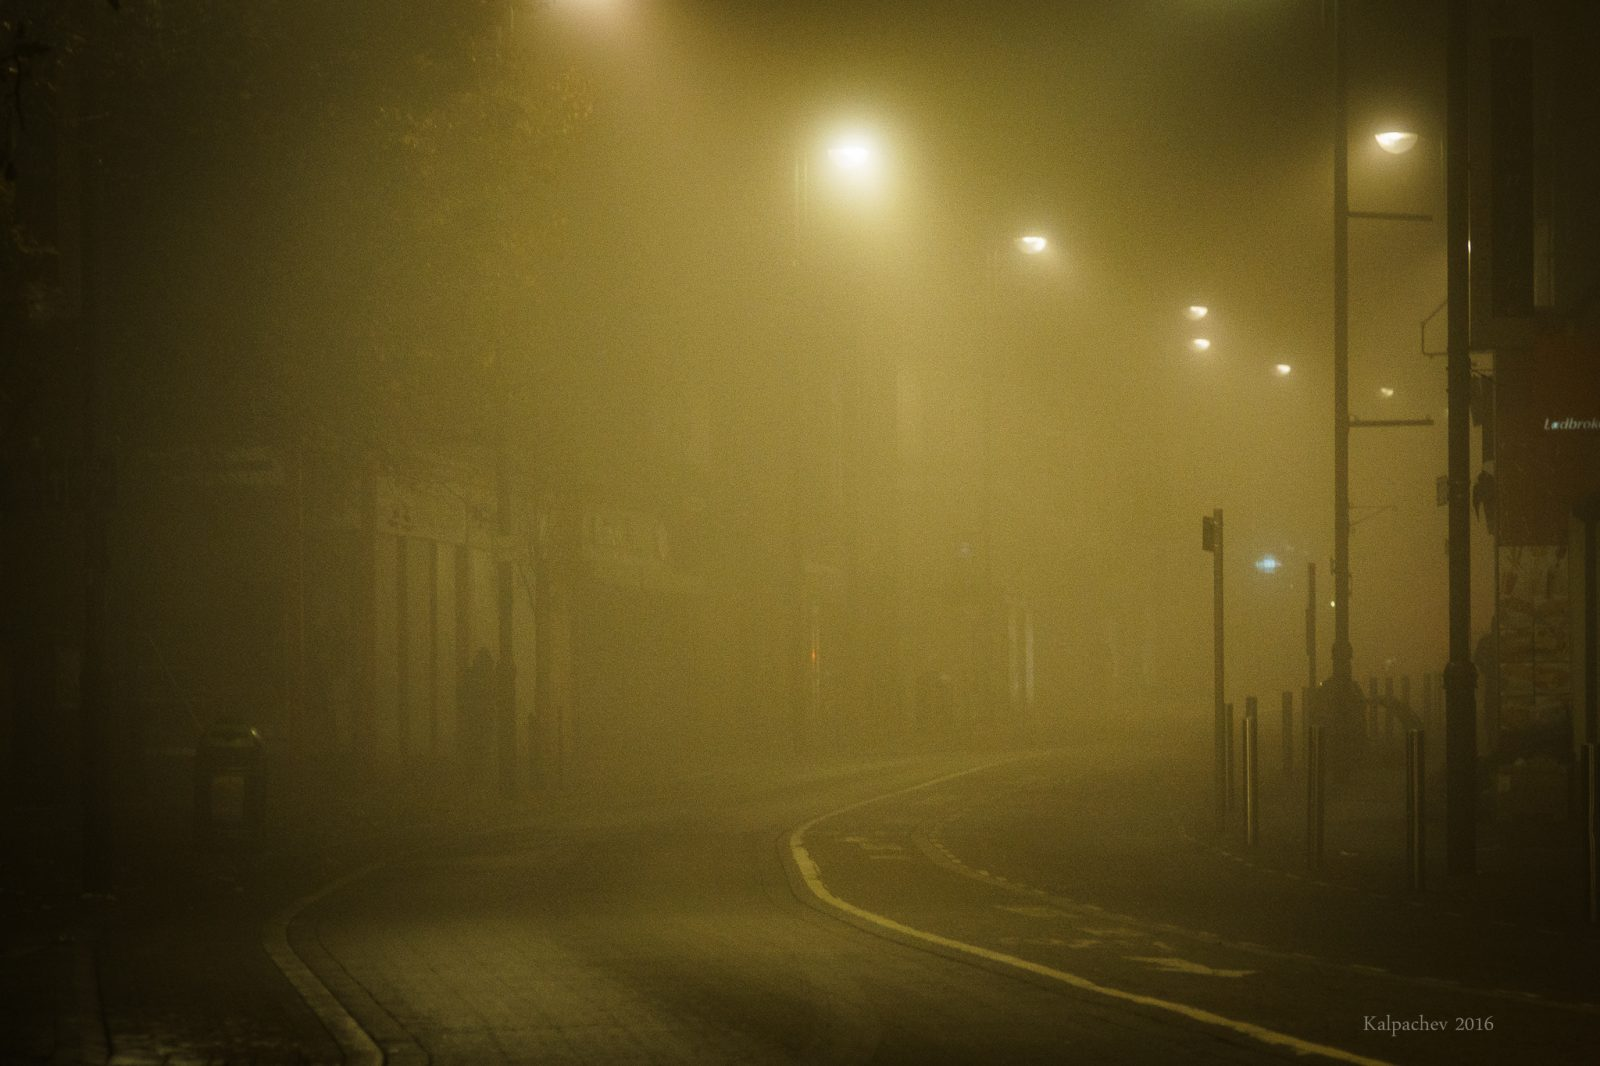 Lost in the fog in East London